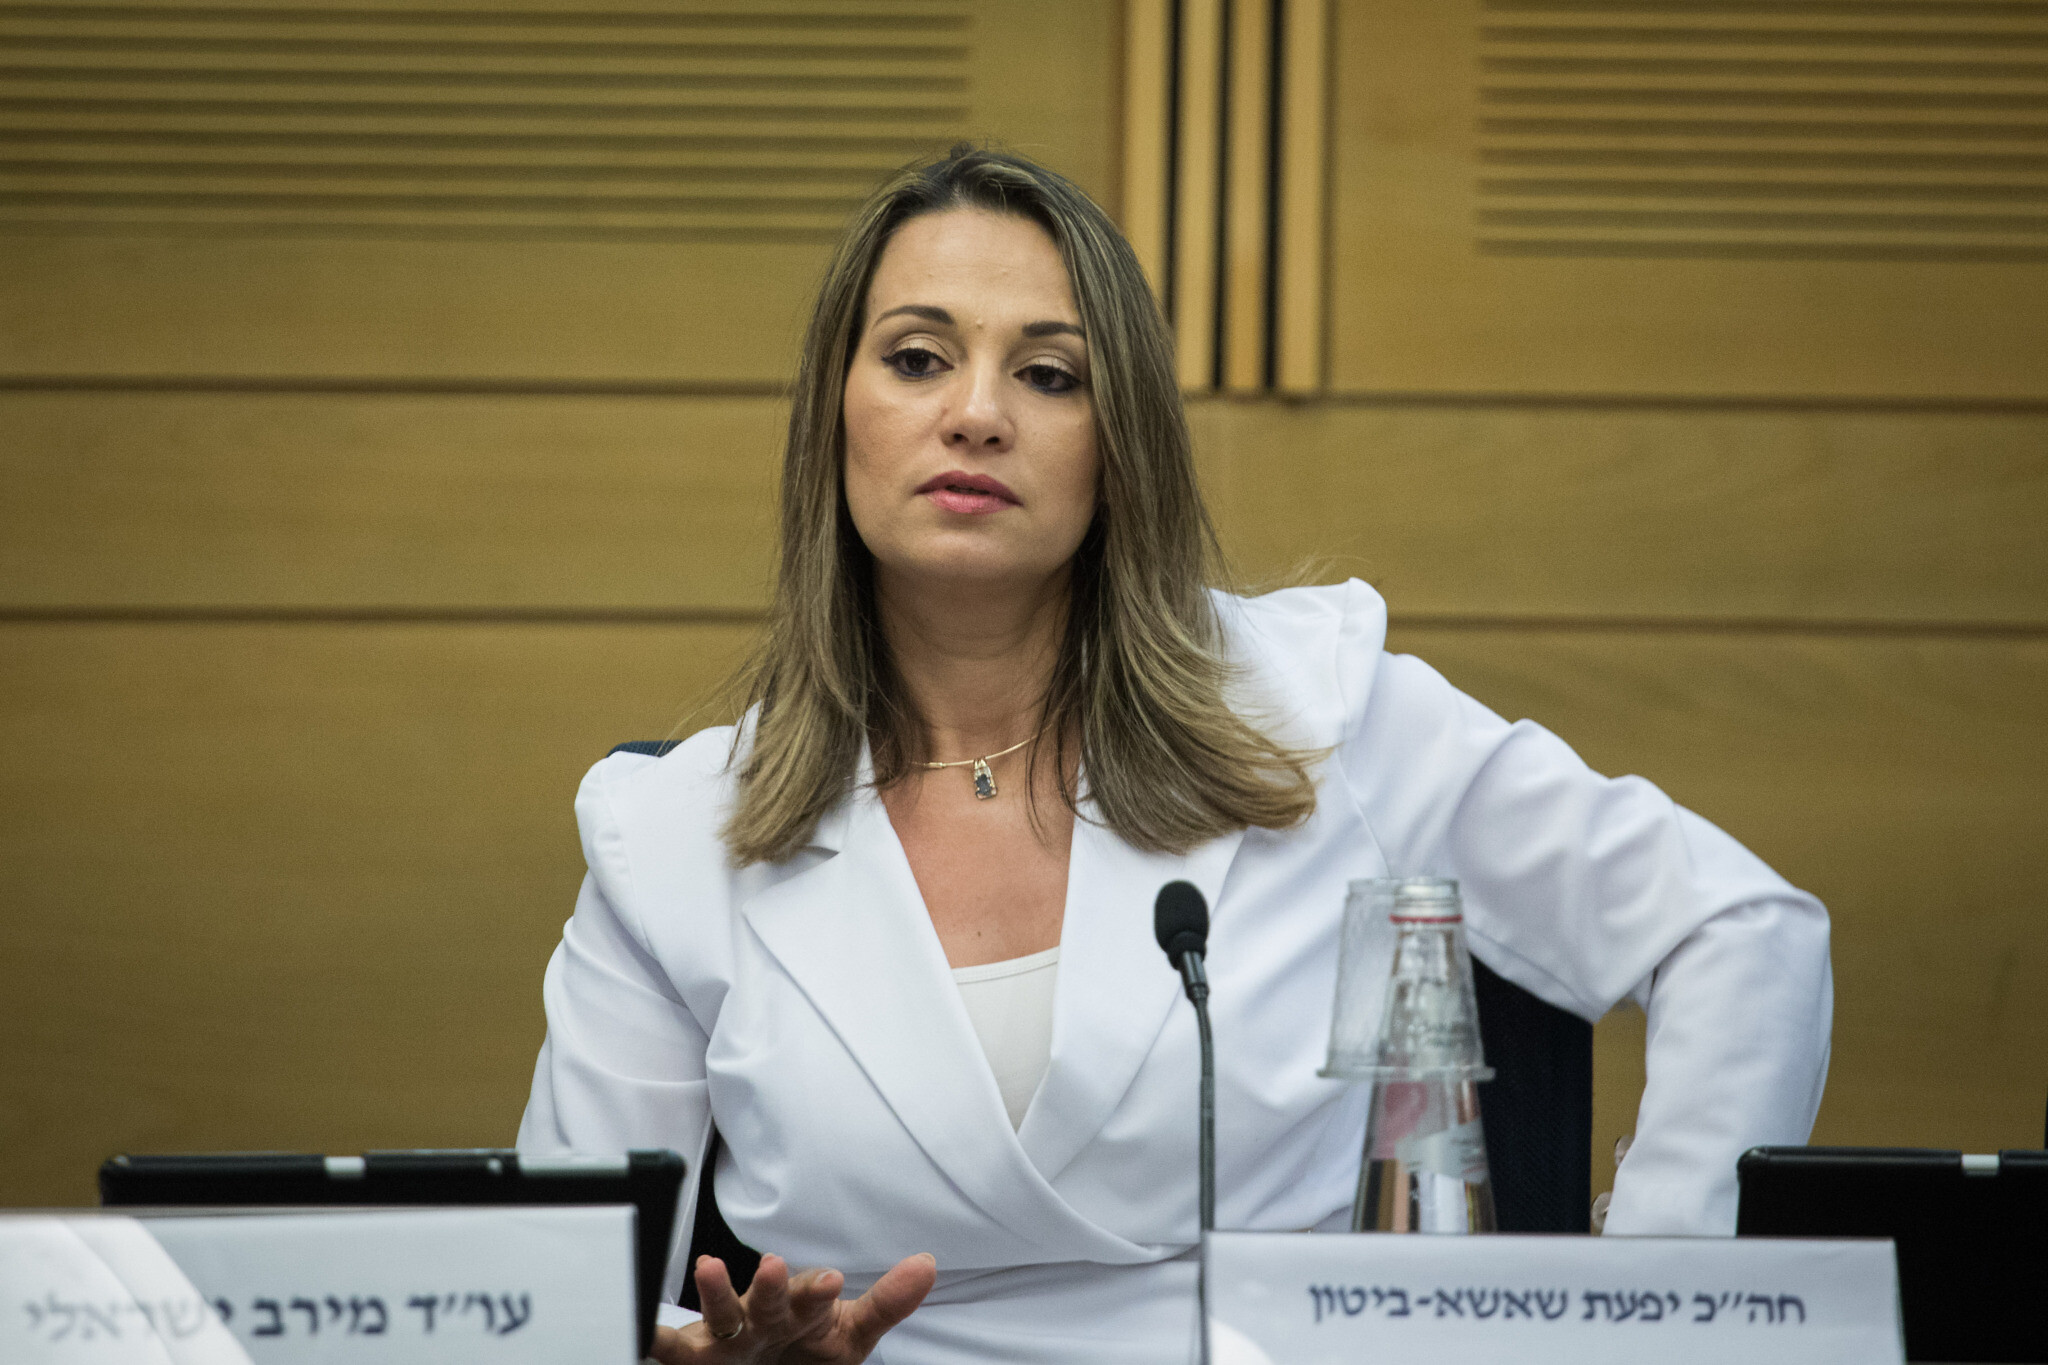 Knesset virus panel chair told she's fired, after butting heads with  Netanyahu | The Times of Israel